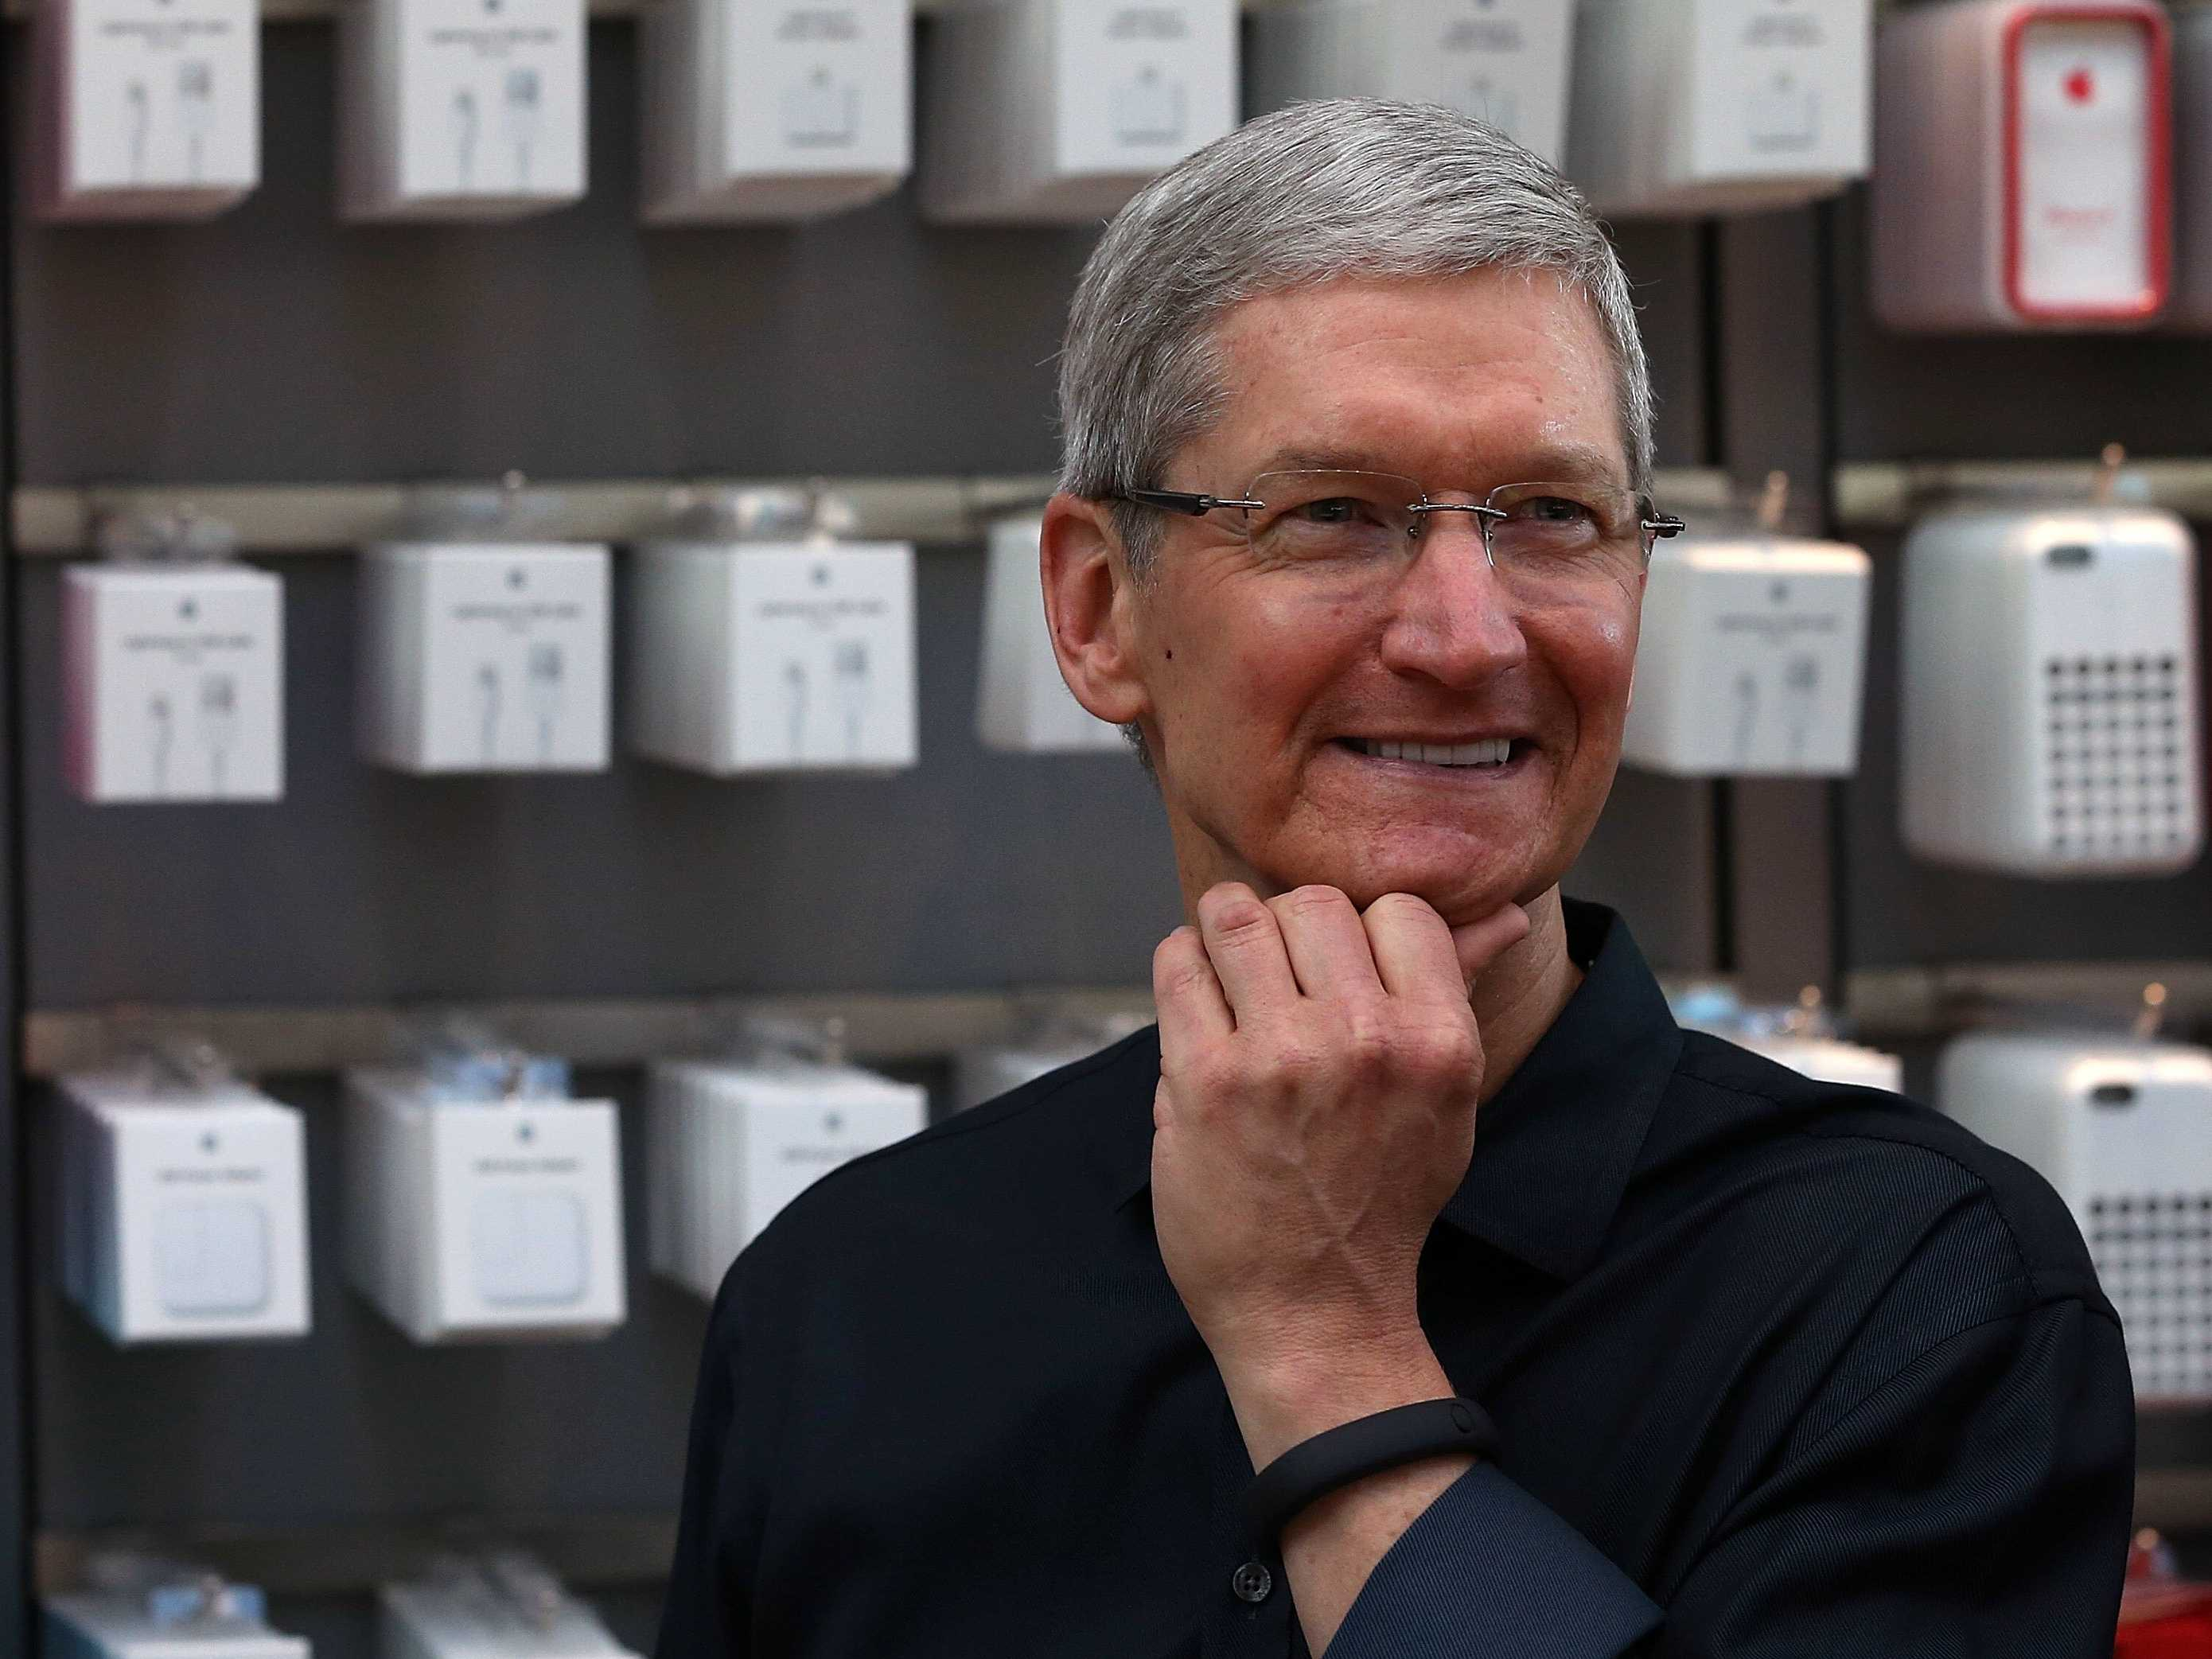 tim-cook-has-a-somewhat-baffling-answer-when-asked-about-apple-doing-new-product-categories-this-year